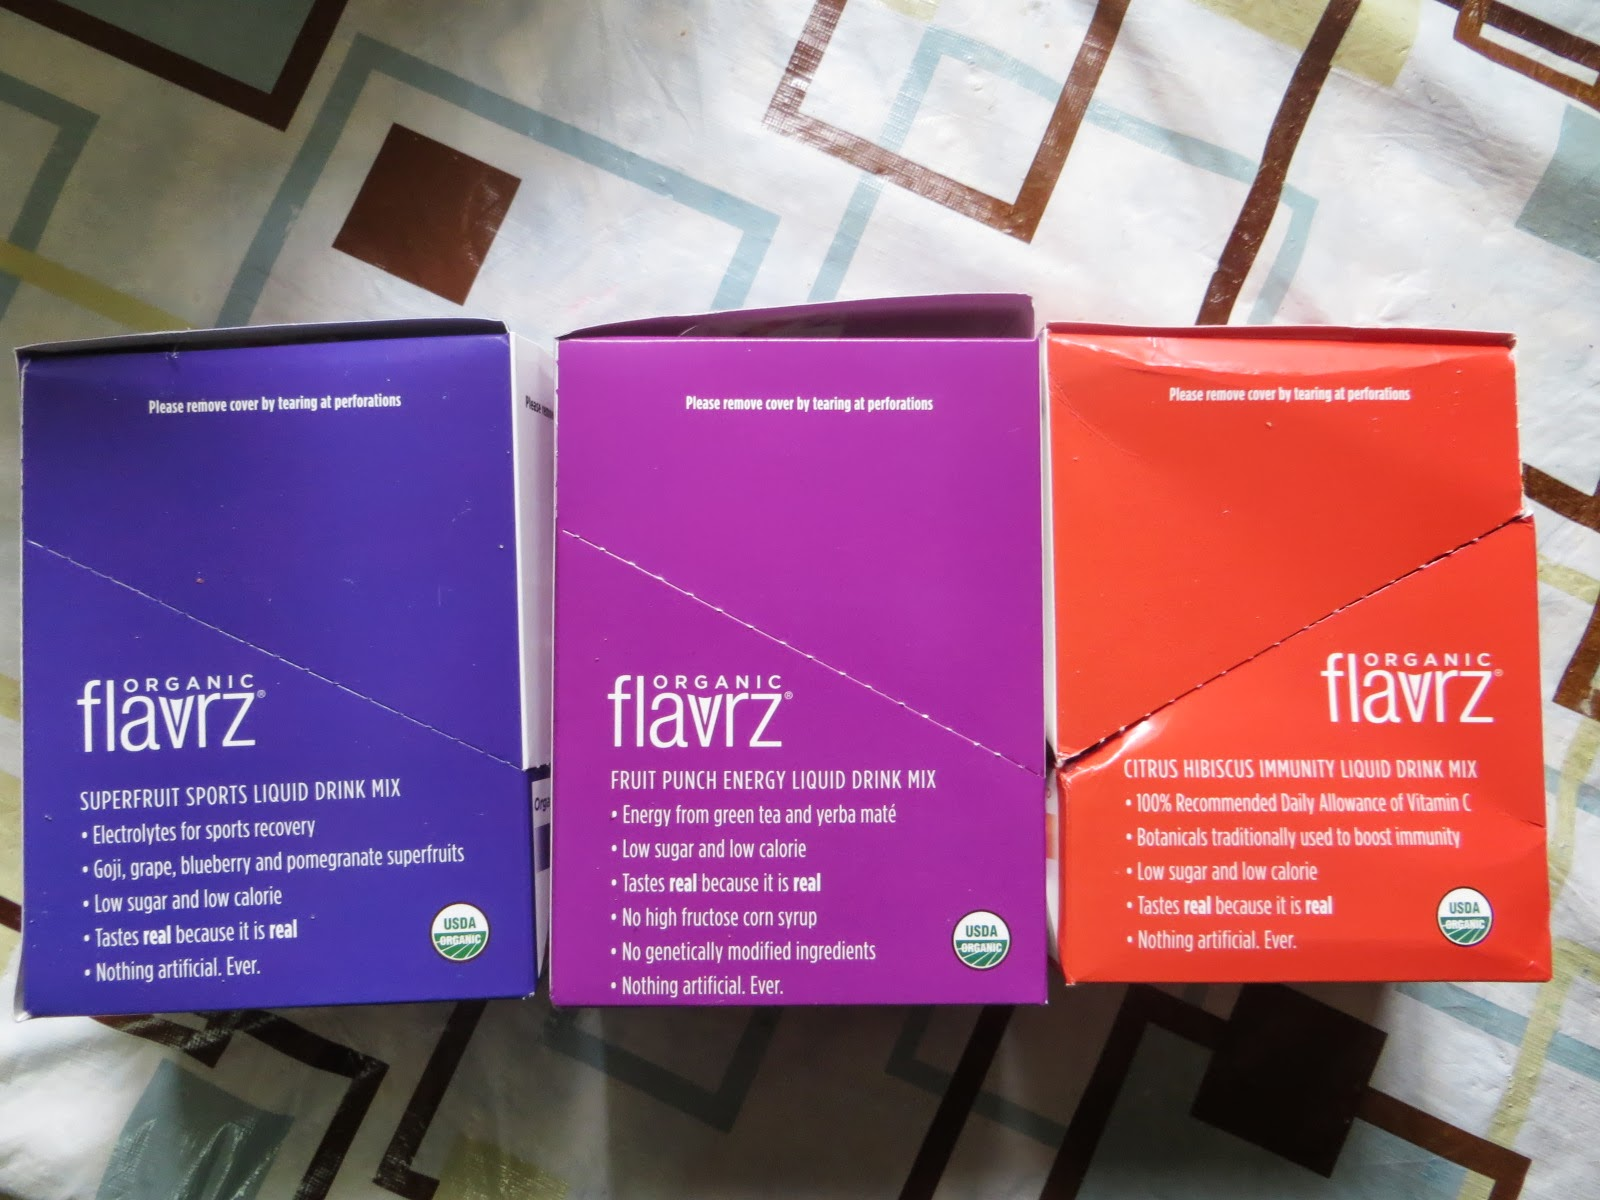 Flavrz Organic Drink Review